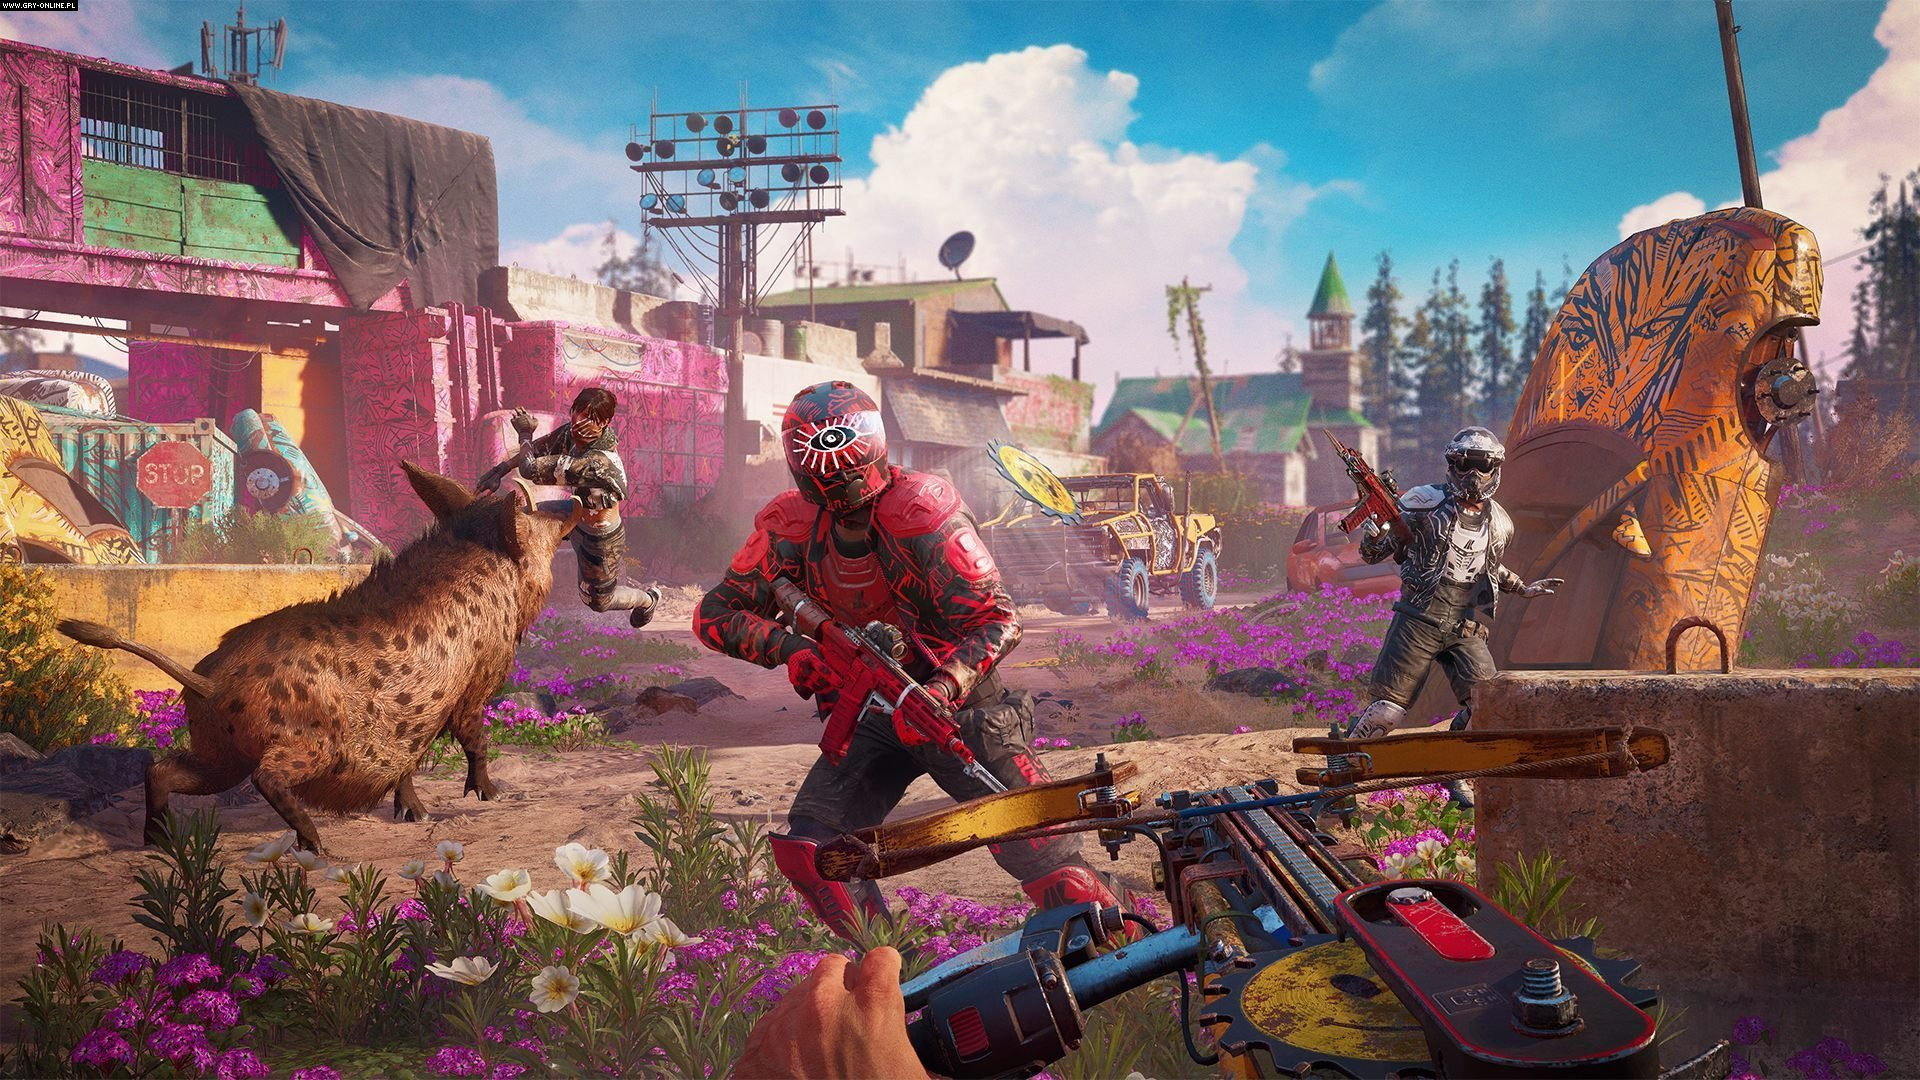 Far Cry: New Dawn PC, PS4, XONE Games Image 5/9, Ubisoft